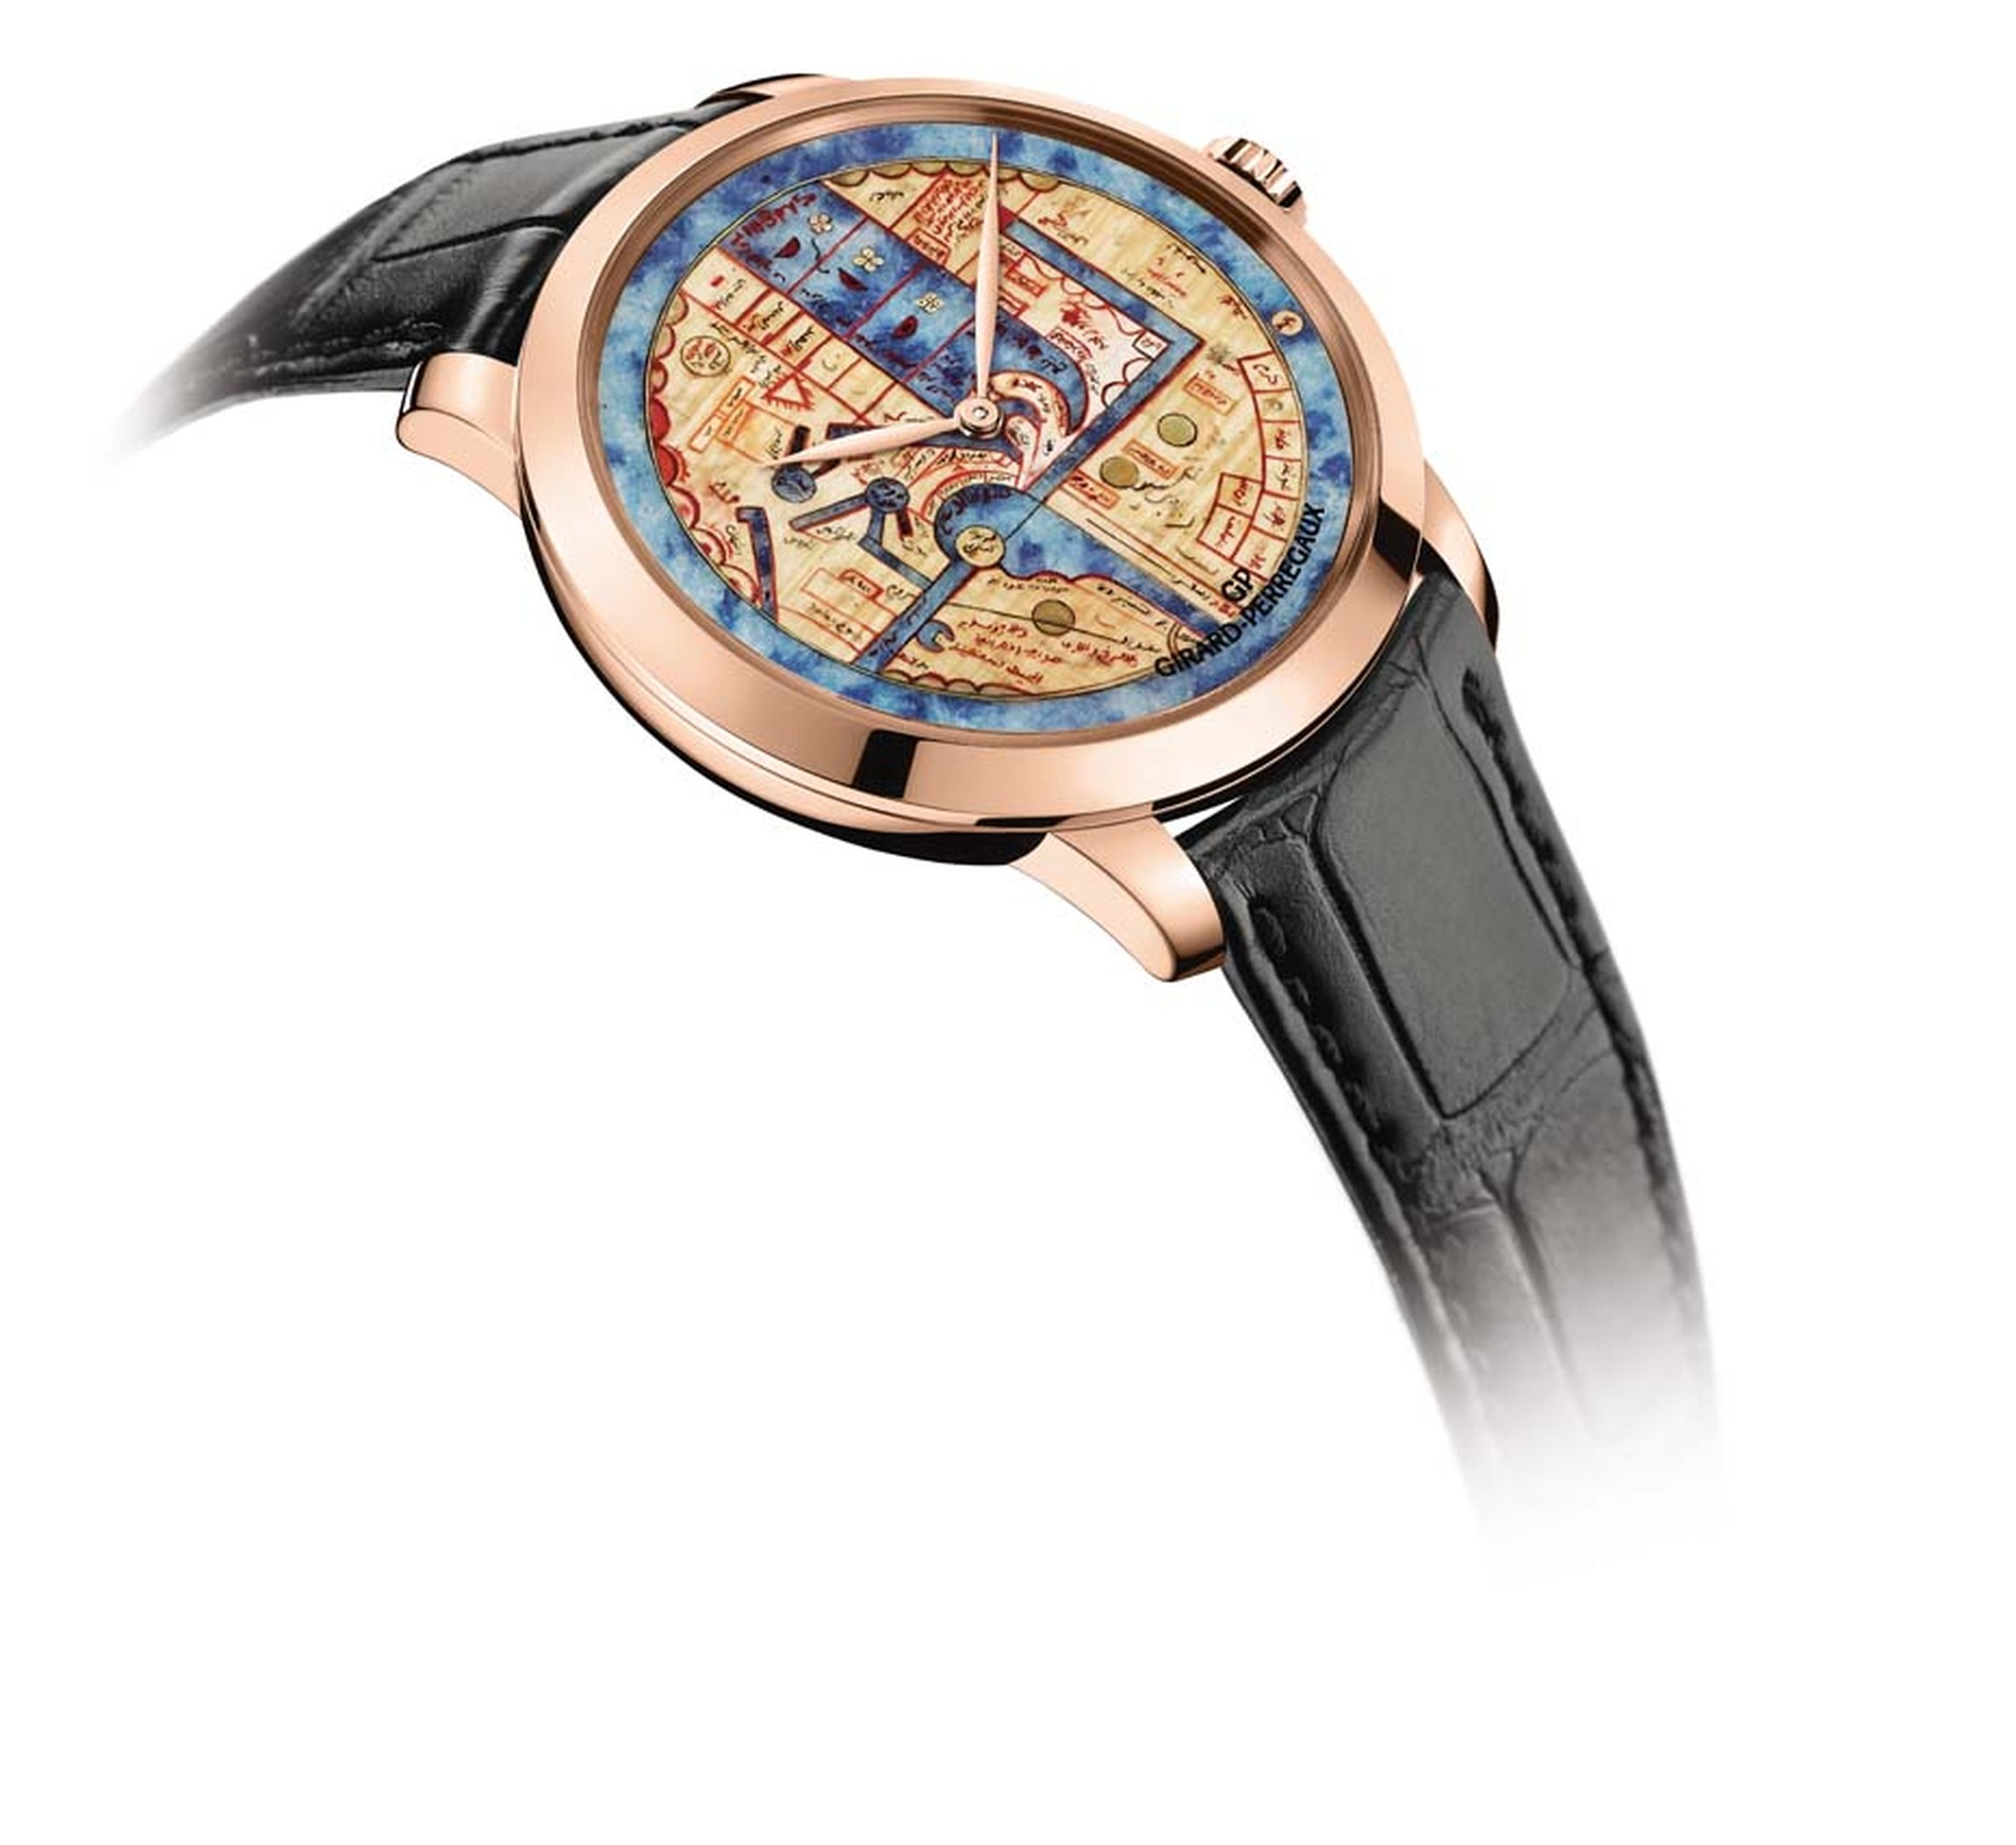 The dial of the Pearl of Wonders watch recreates the blue of the original map with sodalite stone, carved from a block into an ultra-thin disc of just 0.70mm.